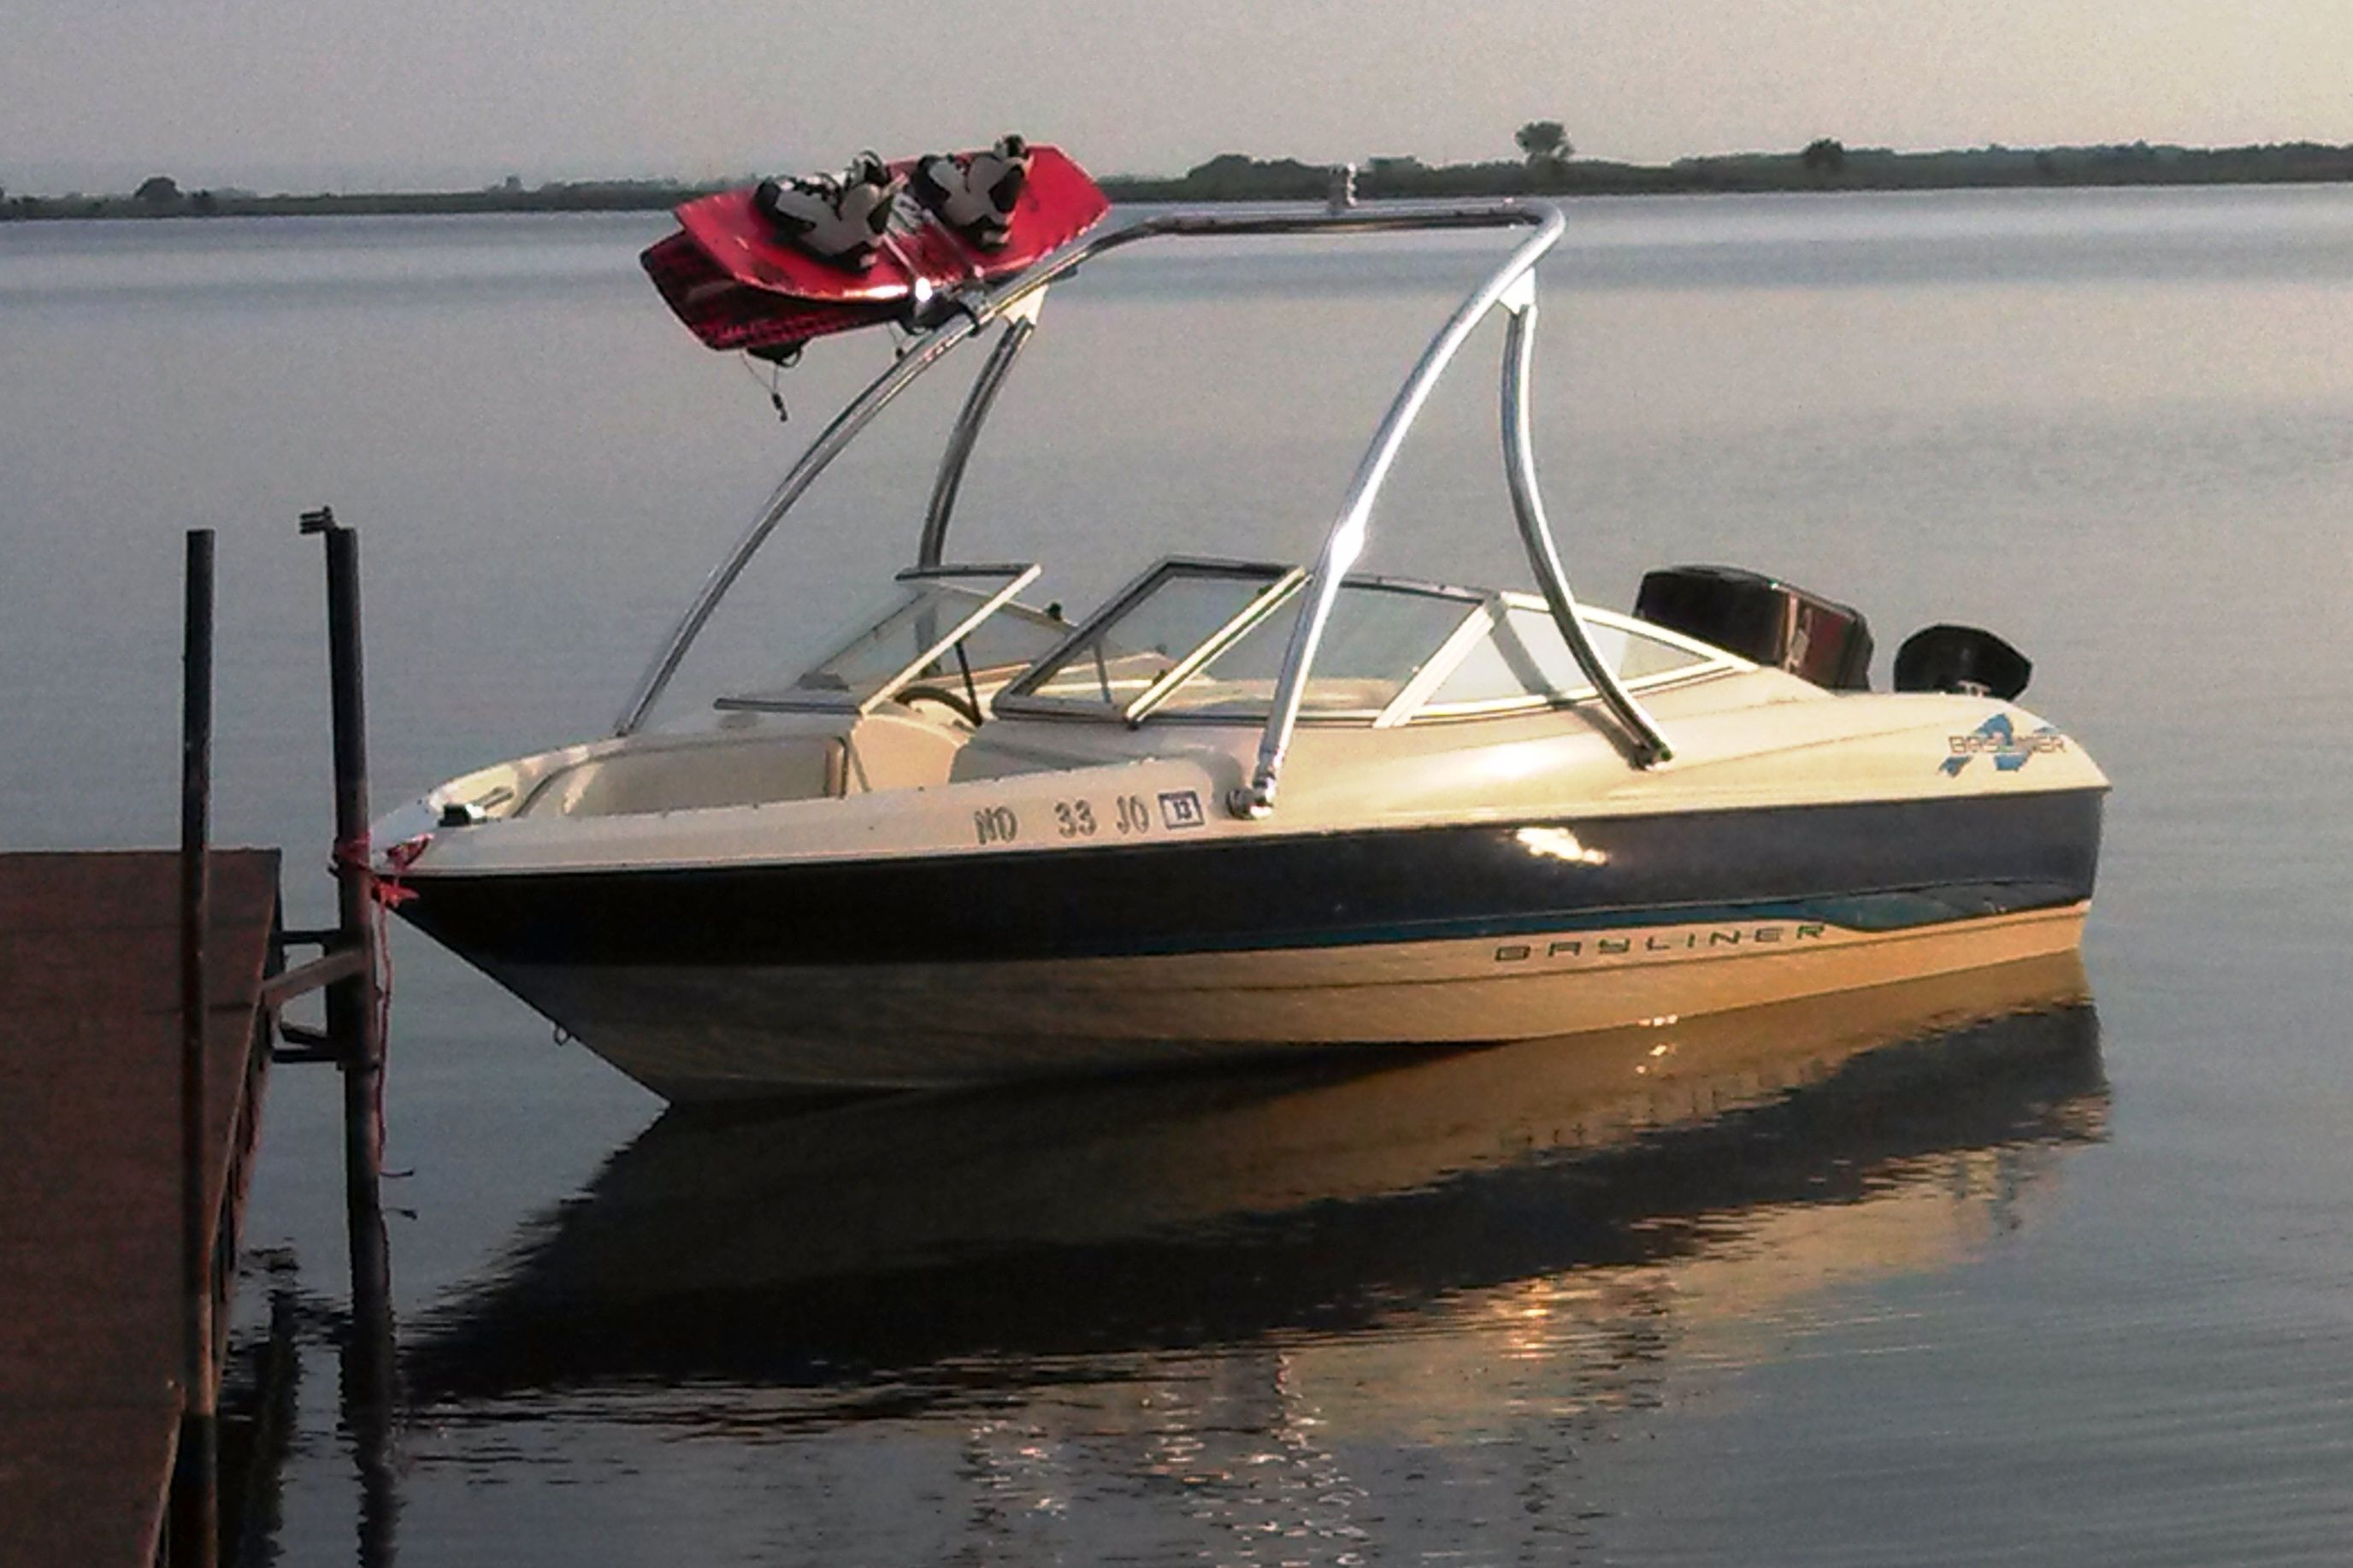 1995 bayliner 1700 ls capri with a big air ice tower for Ice scratcher boat motor for sale